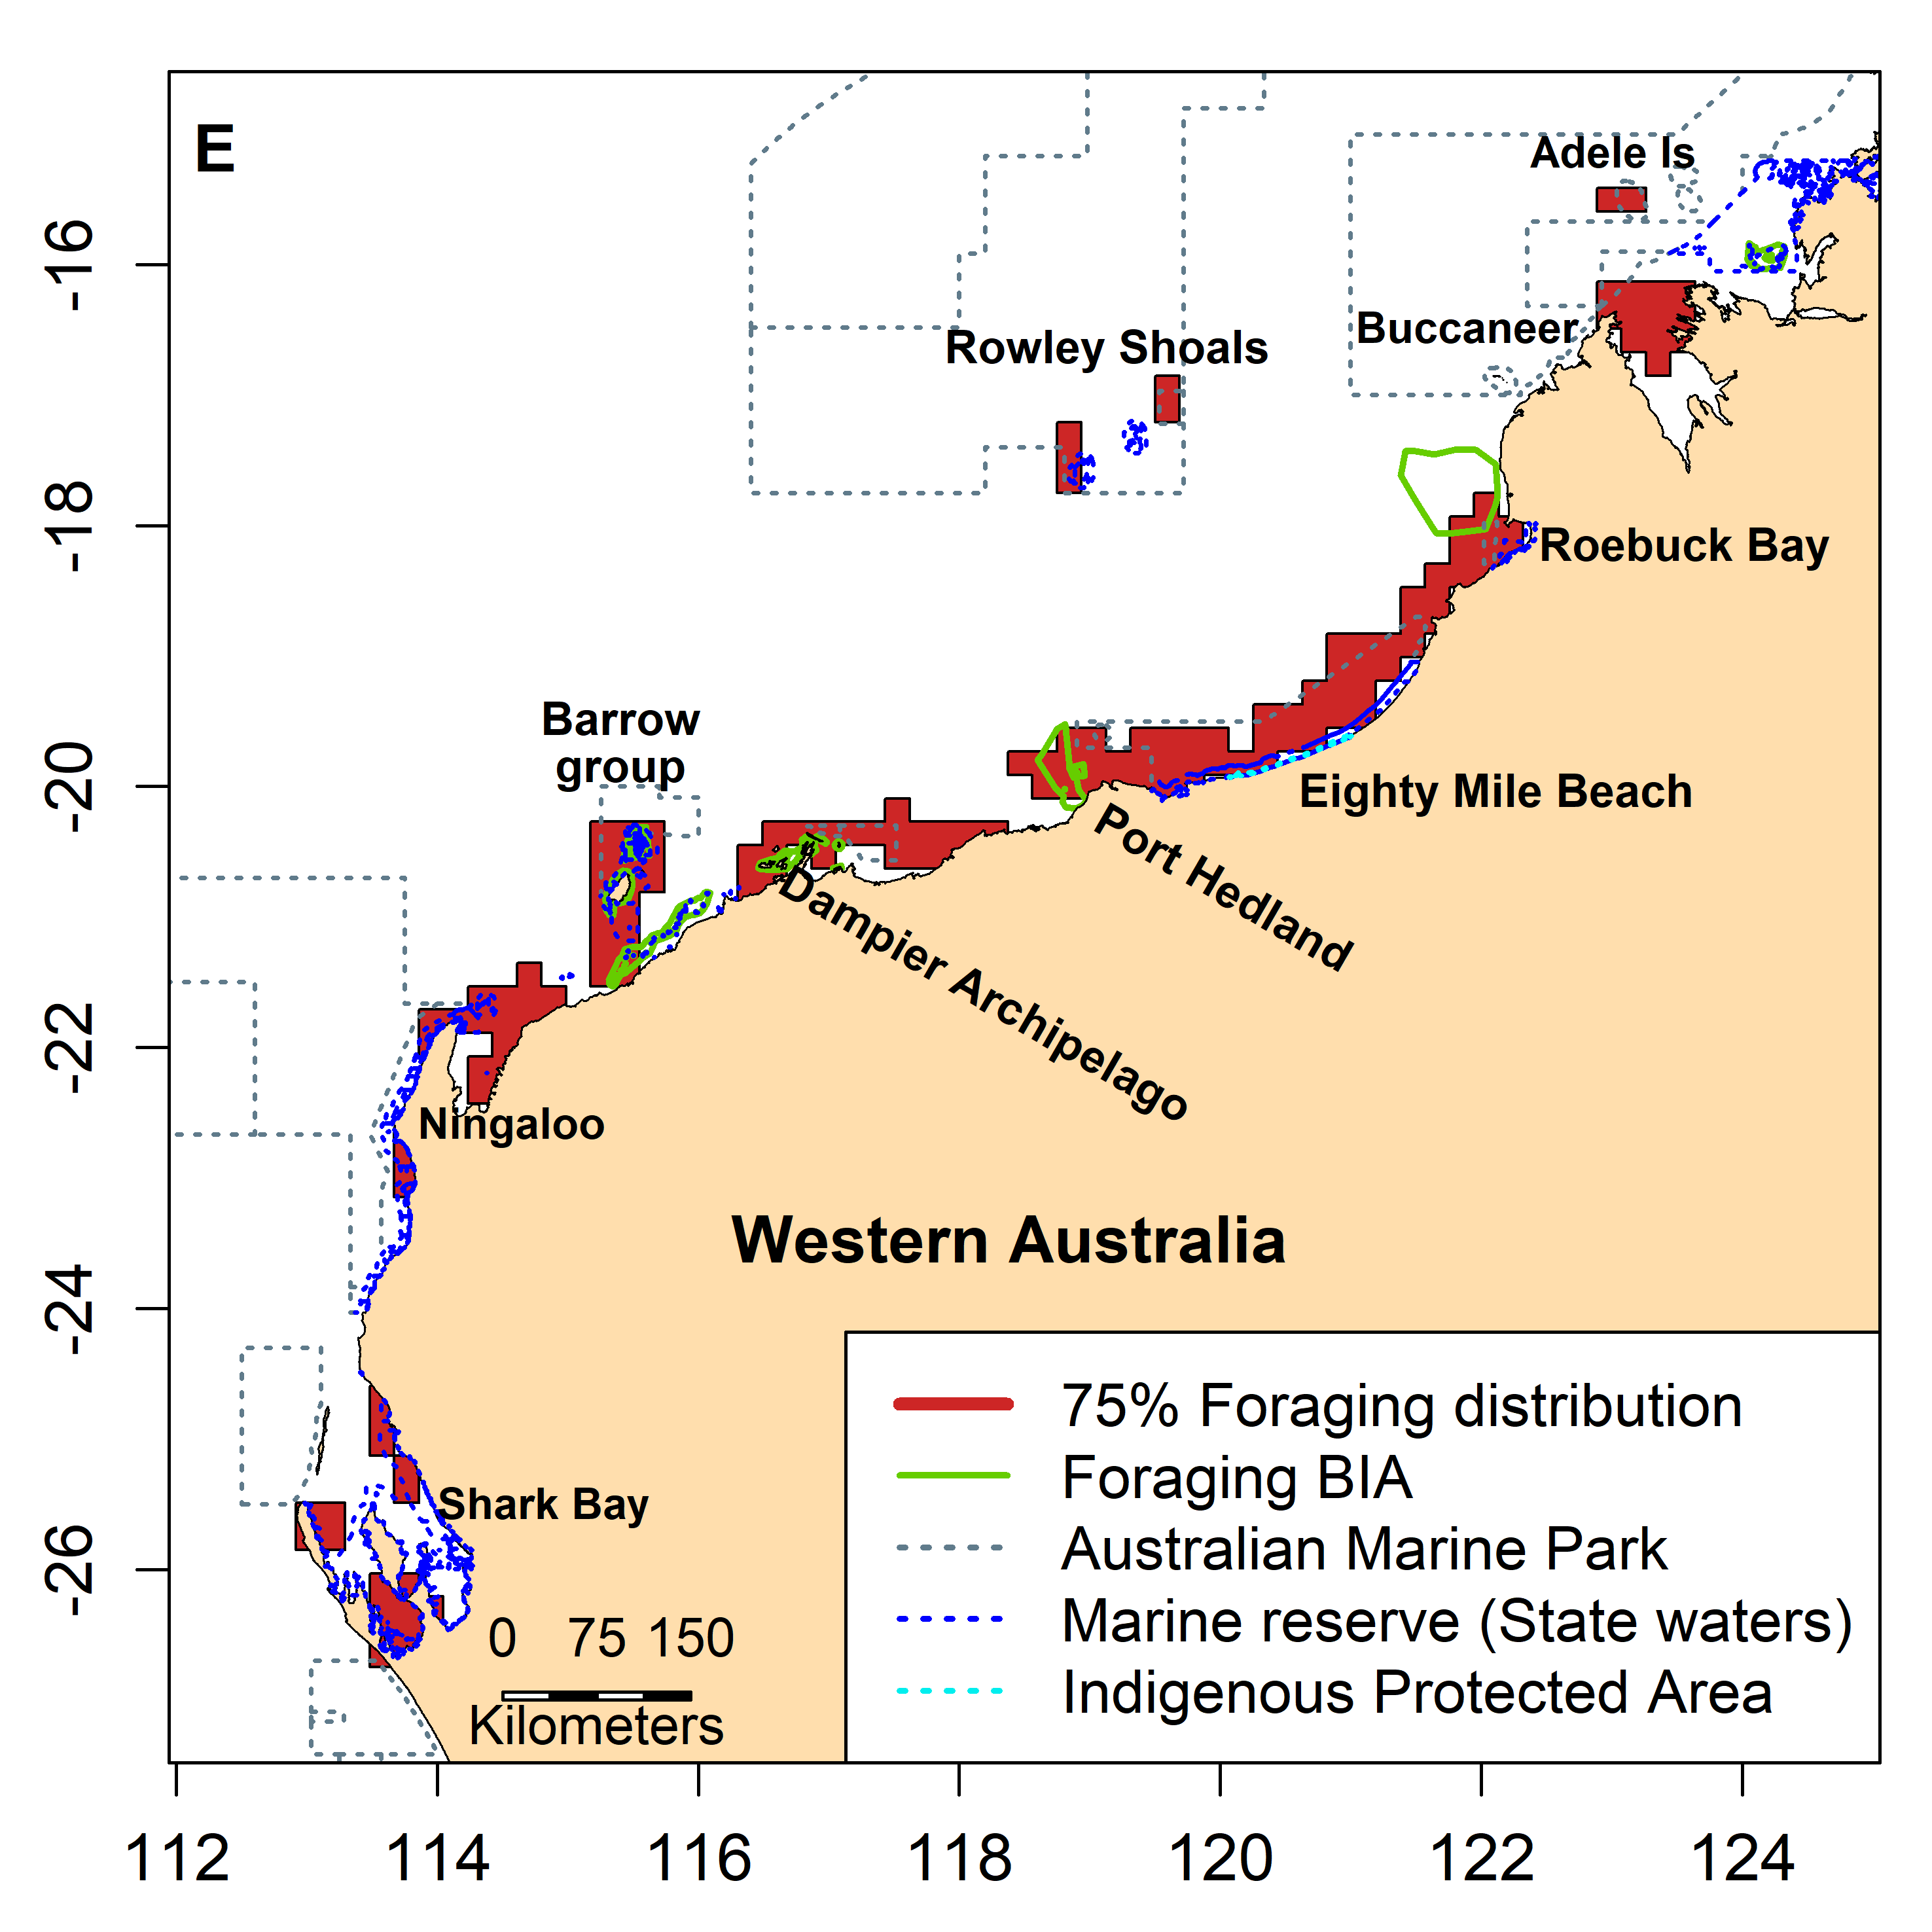 Inter-nesting, migration and foraging 75% distribution of green turtles in the Northwest of Australia